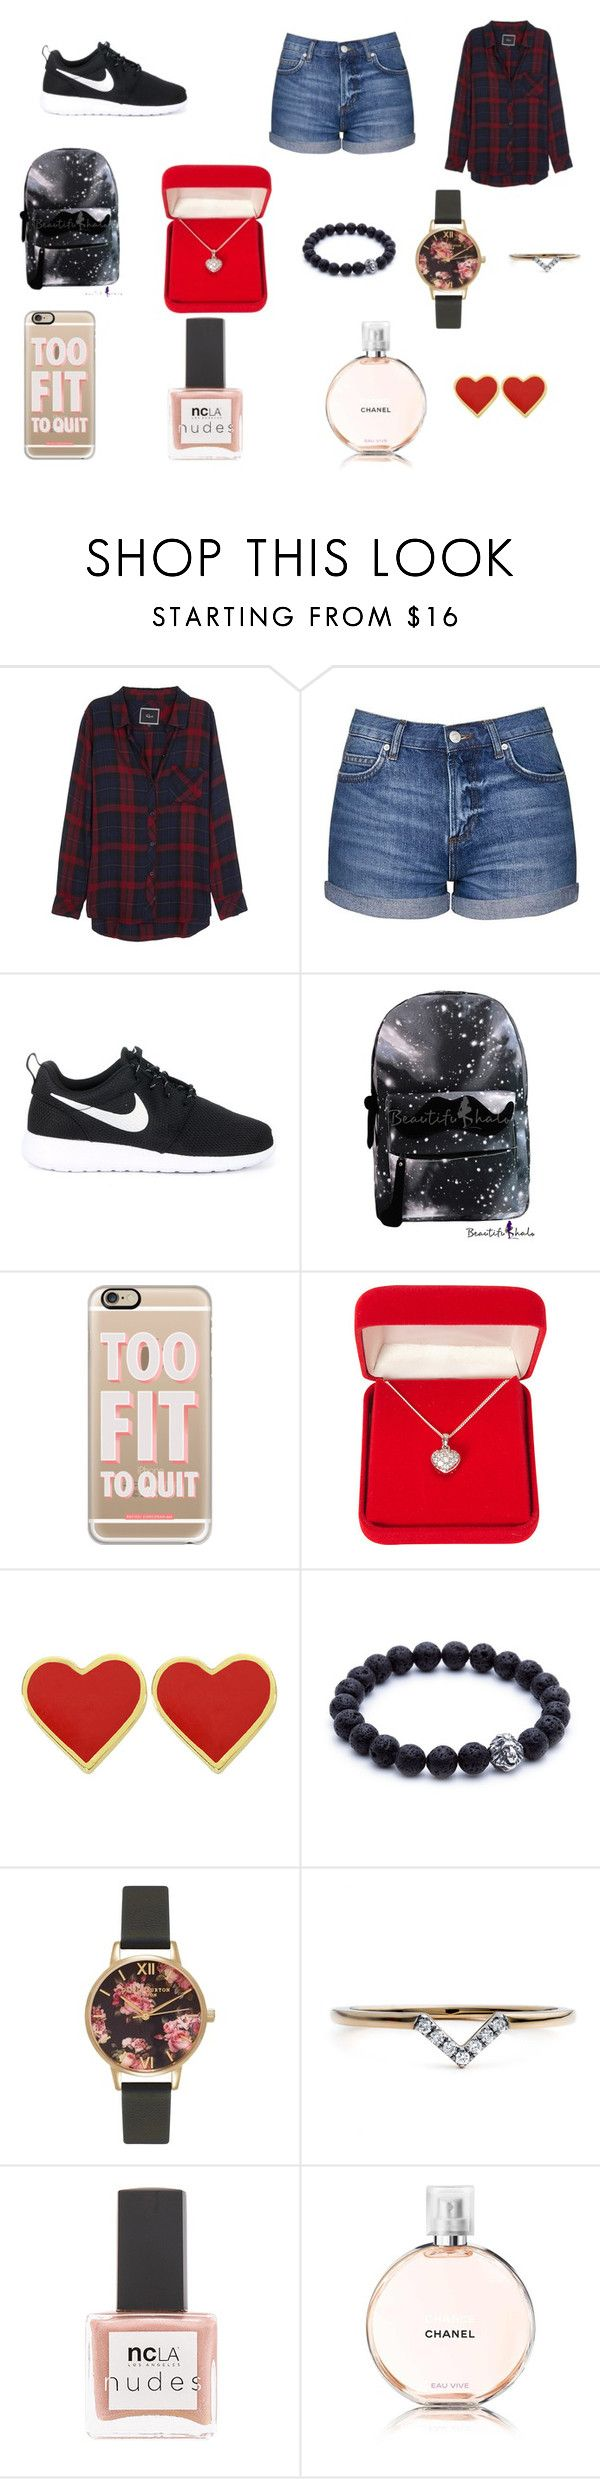 """""""Rebecca Watson"""" by bexie16 on Polyvore featuring Rails, Topshop, NIKE, Casetify, Alexa Starr, Olivia Burton, Diamonds Unleashed, ncLA and Chanel"""